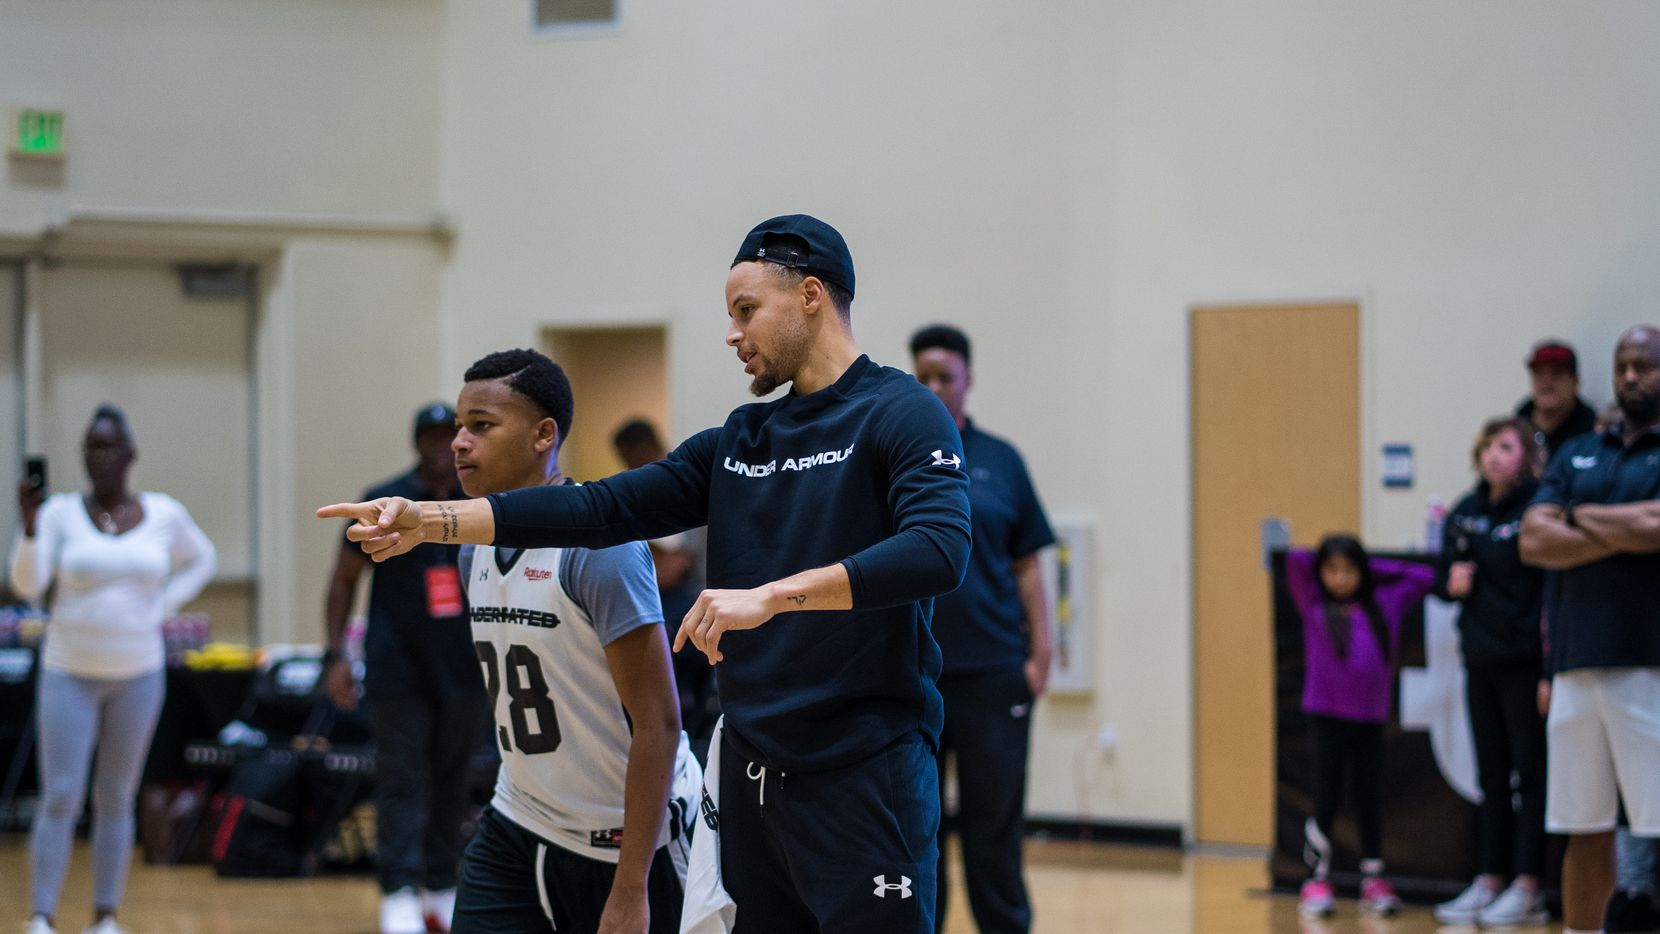 Stephen Curry's Underrated Tour will host a regional showcase for high school boys and girls basketball players in Dallas from March 7-8.